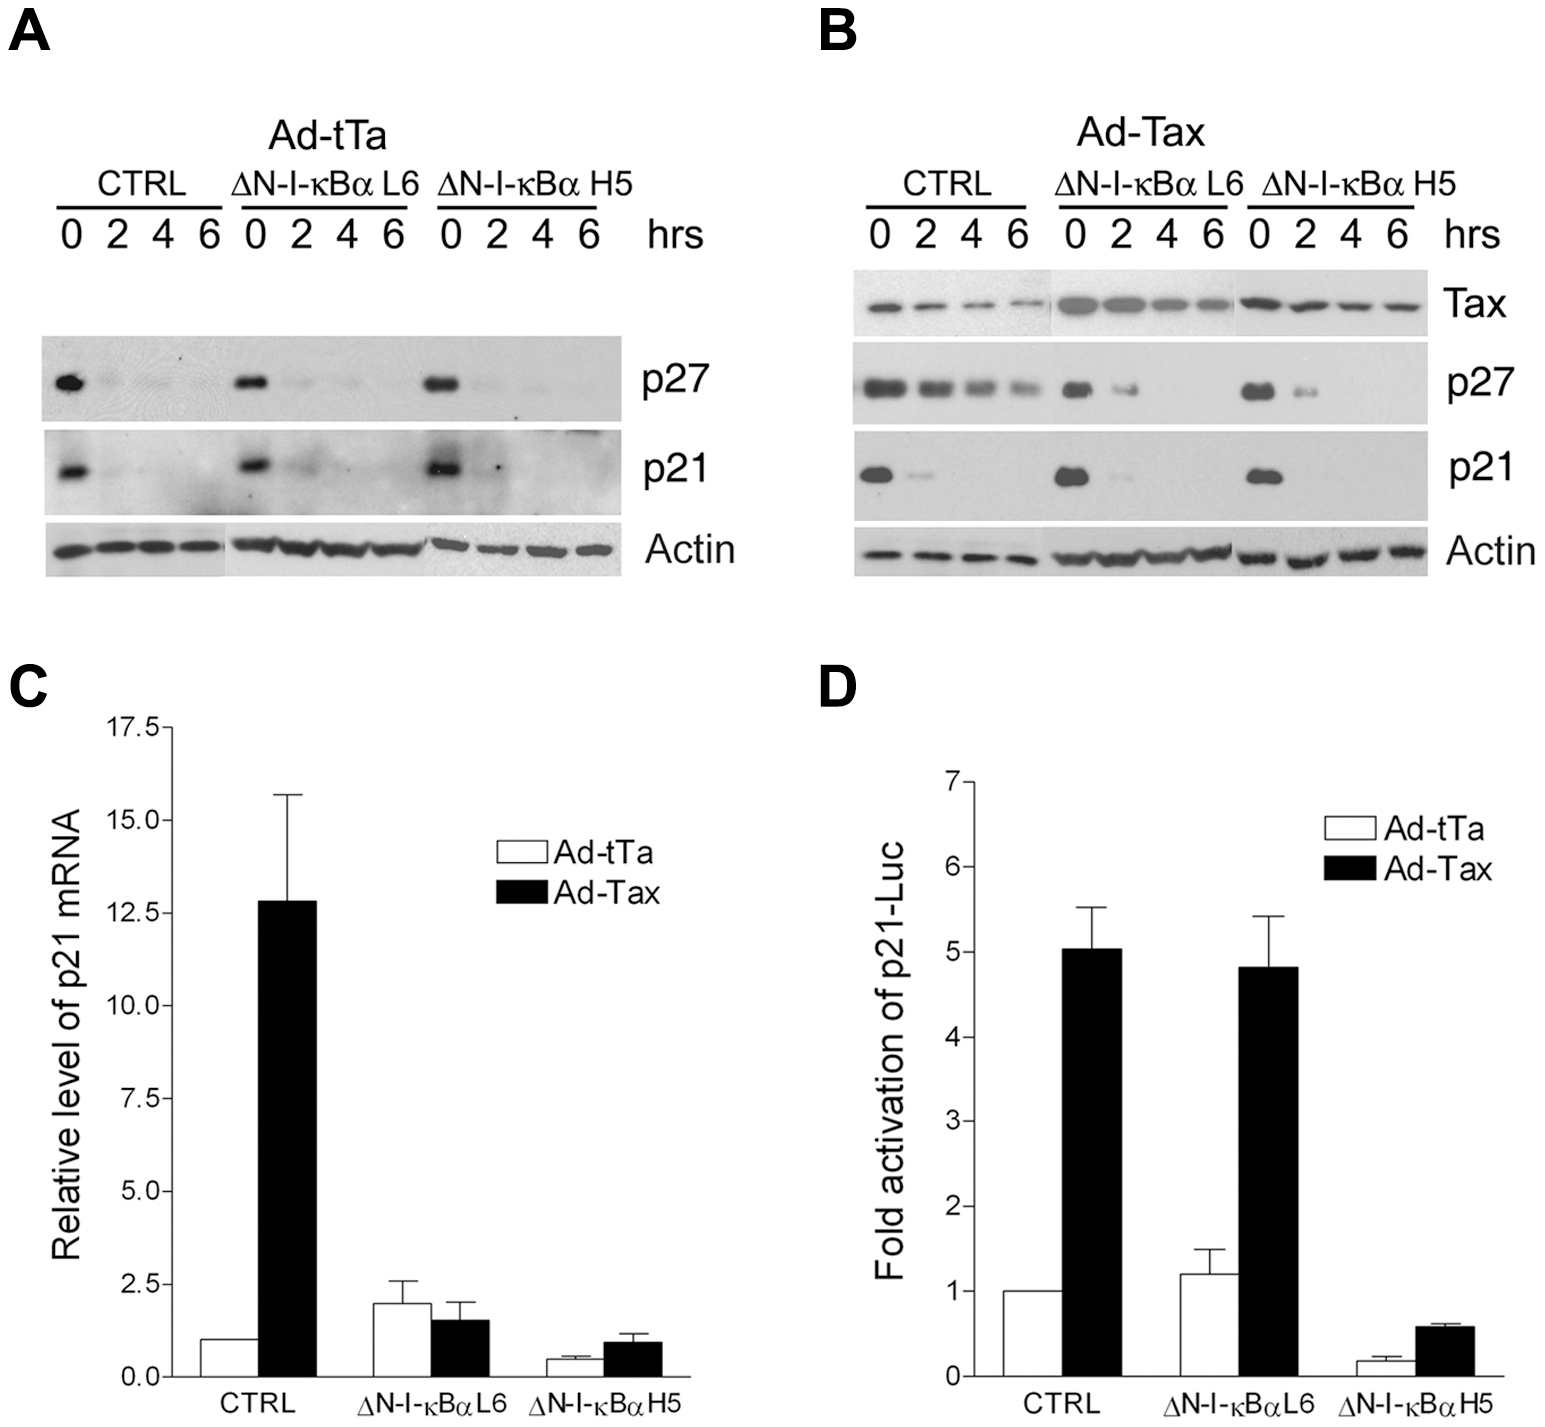 Inhibition of NF-κB prevents the stabilization of p27 protein and the up-regulation of p21 mRNA, but not the trans-activation of p21 promoter by Tax.